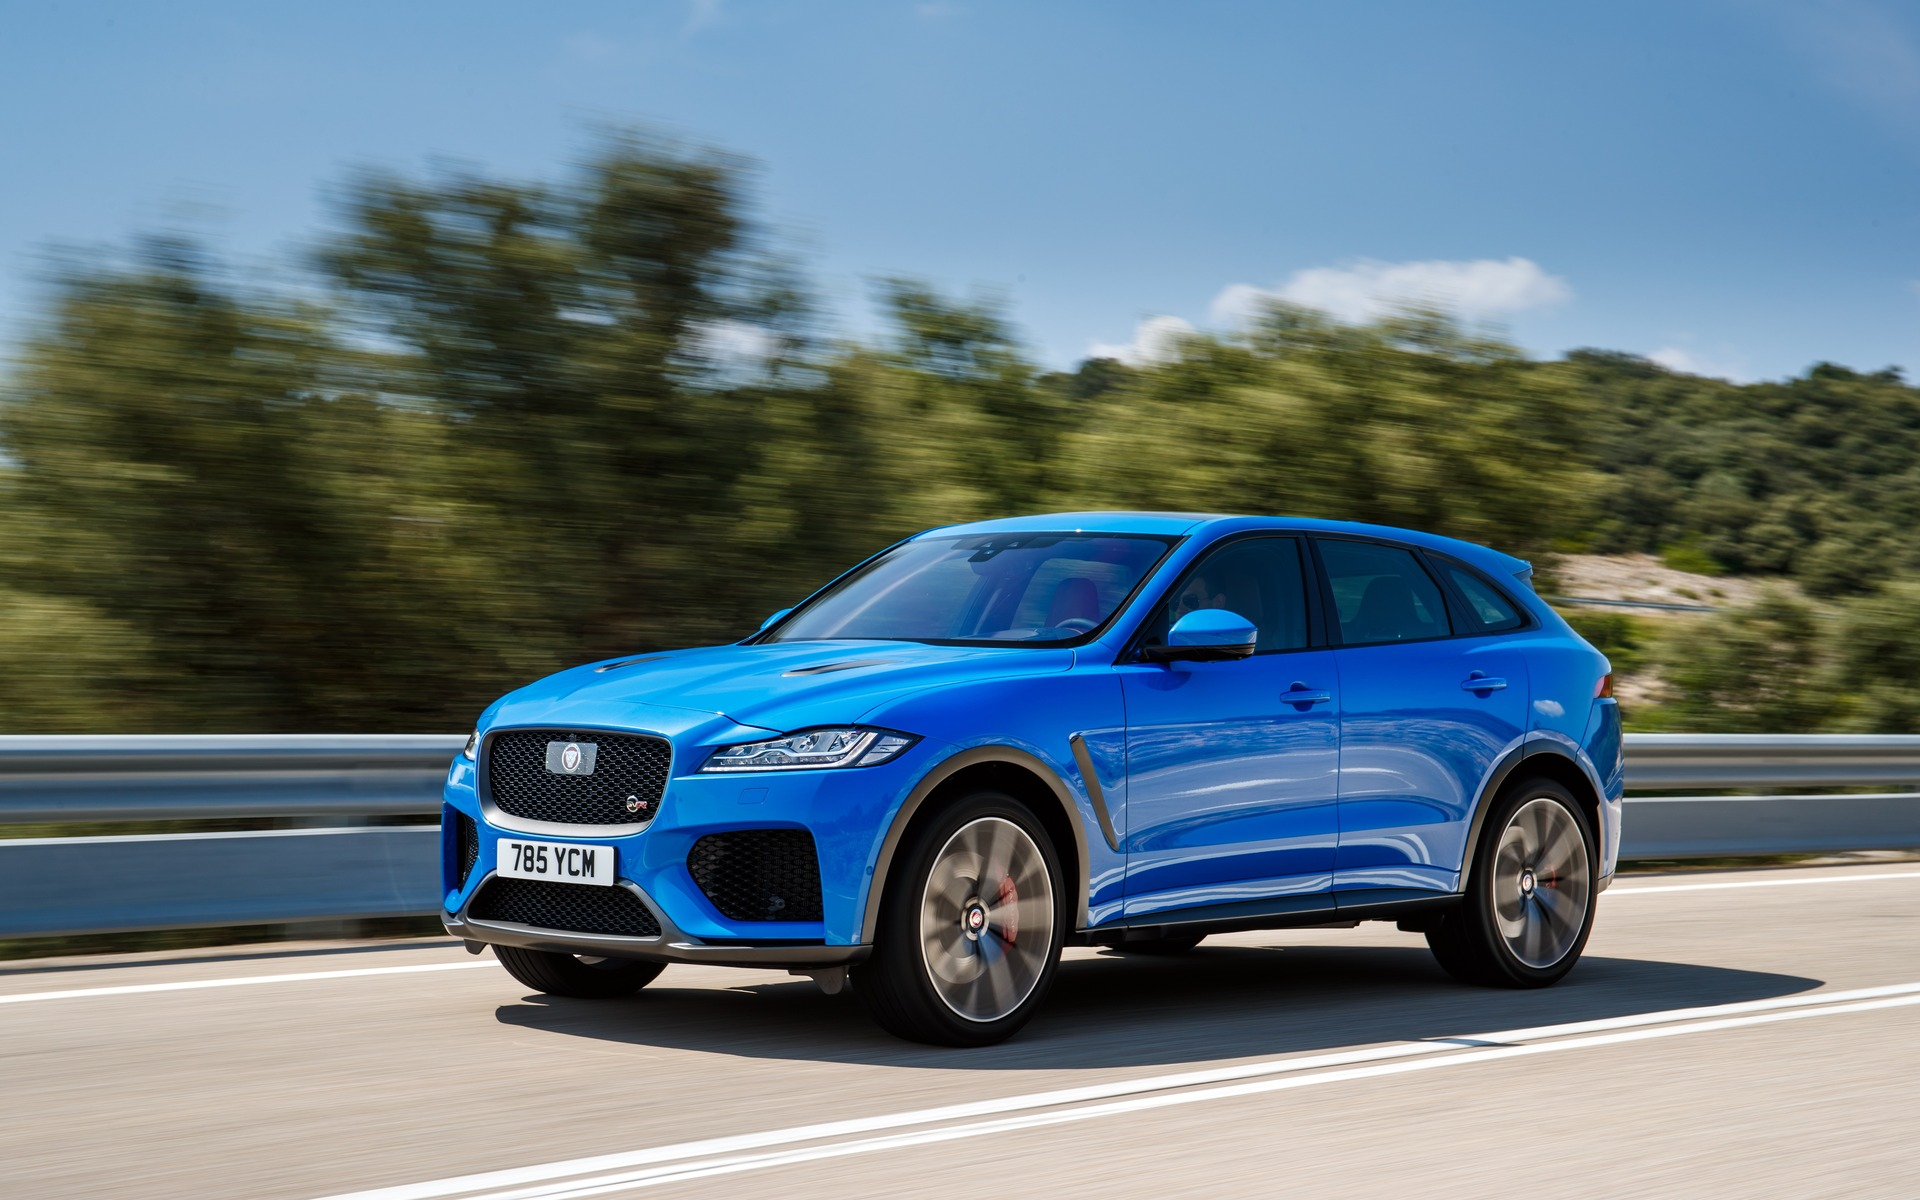 2020 Jaguar F Pace Svr The Heart Of The F Type Svr The Car Guide